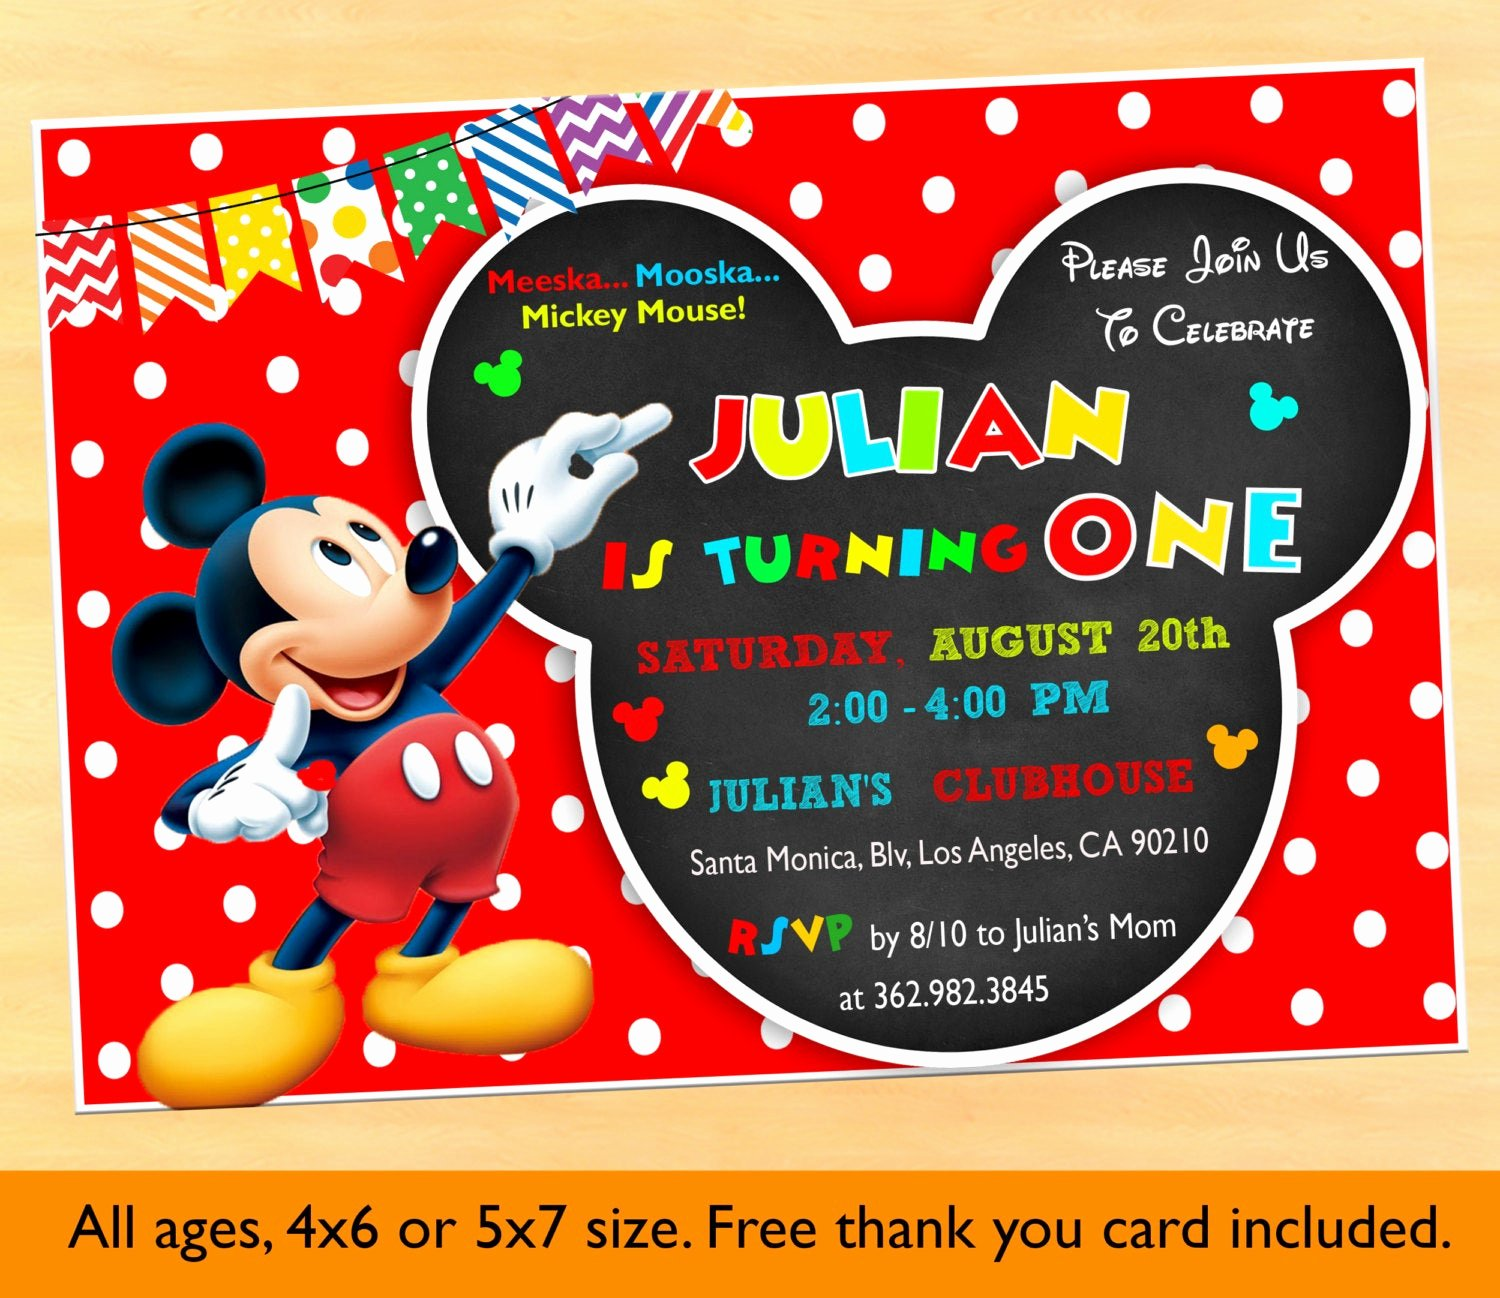 Mickey Mouse Clubhouse Birthday Invitations Fresh Mickey Mouse Clubhouse 1st Birthday Invitations Mickey Mouse